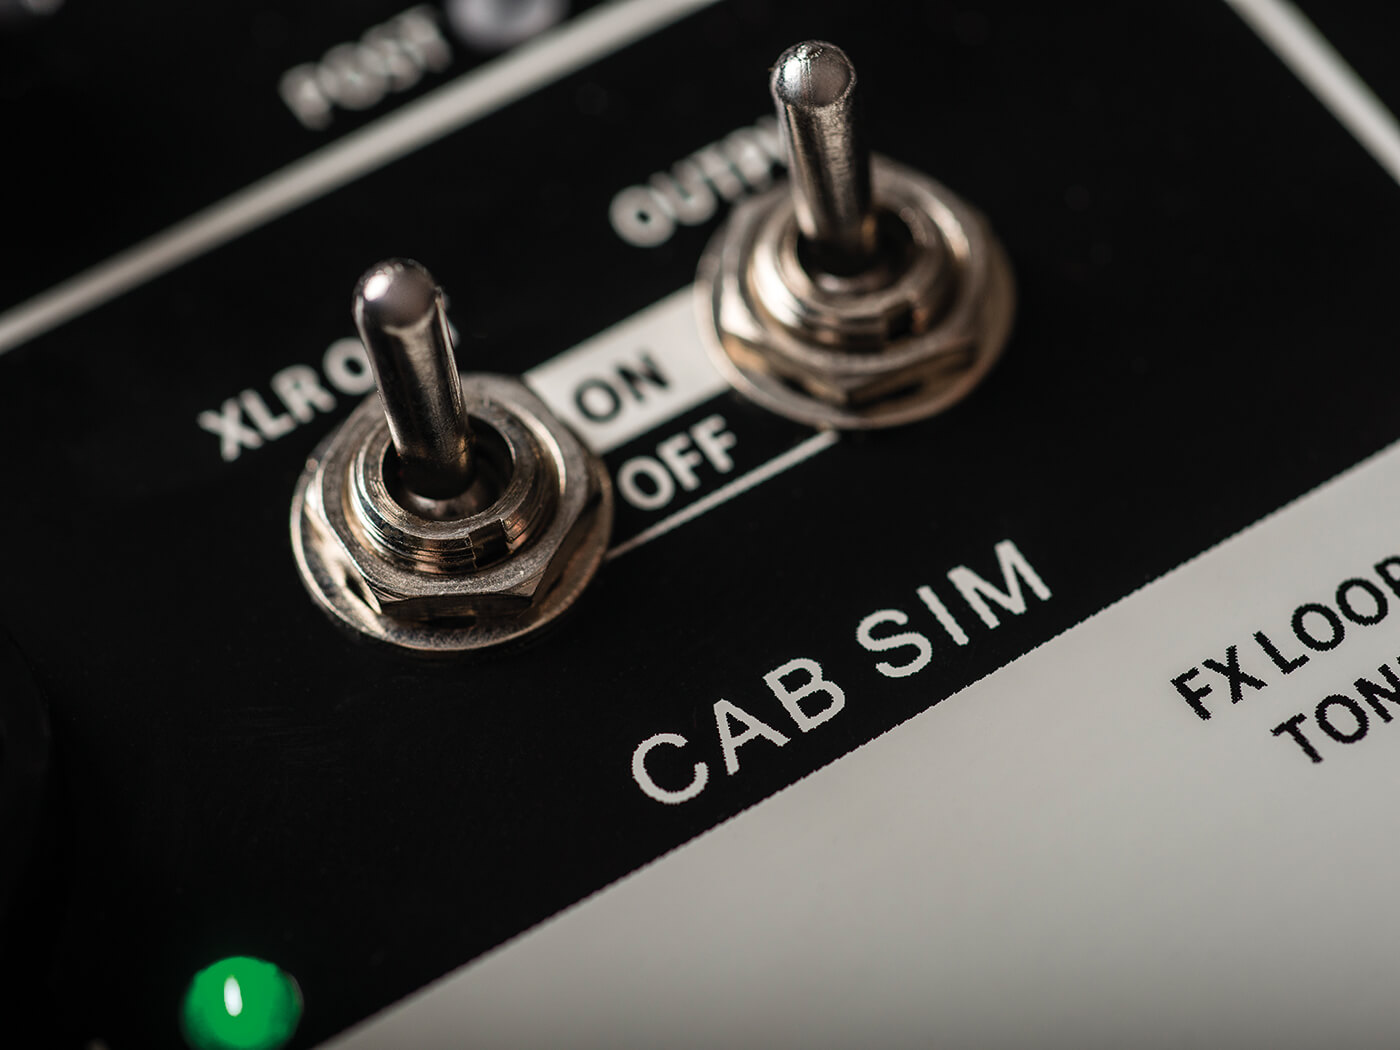 mooer preamp live cab sims